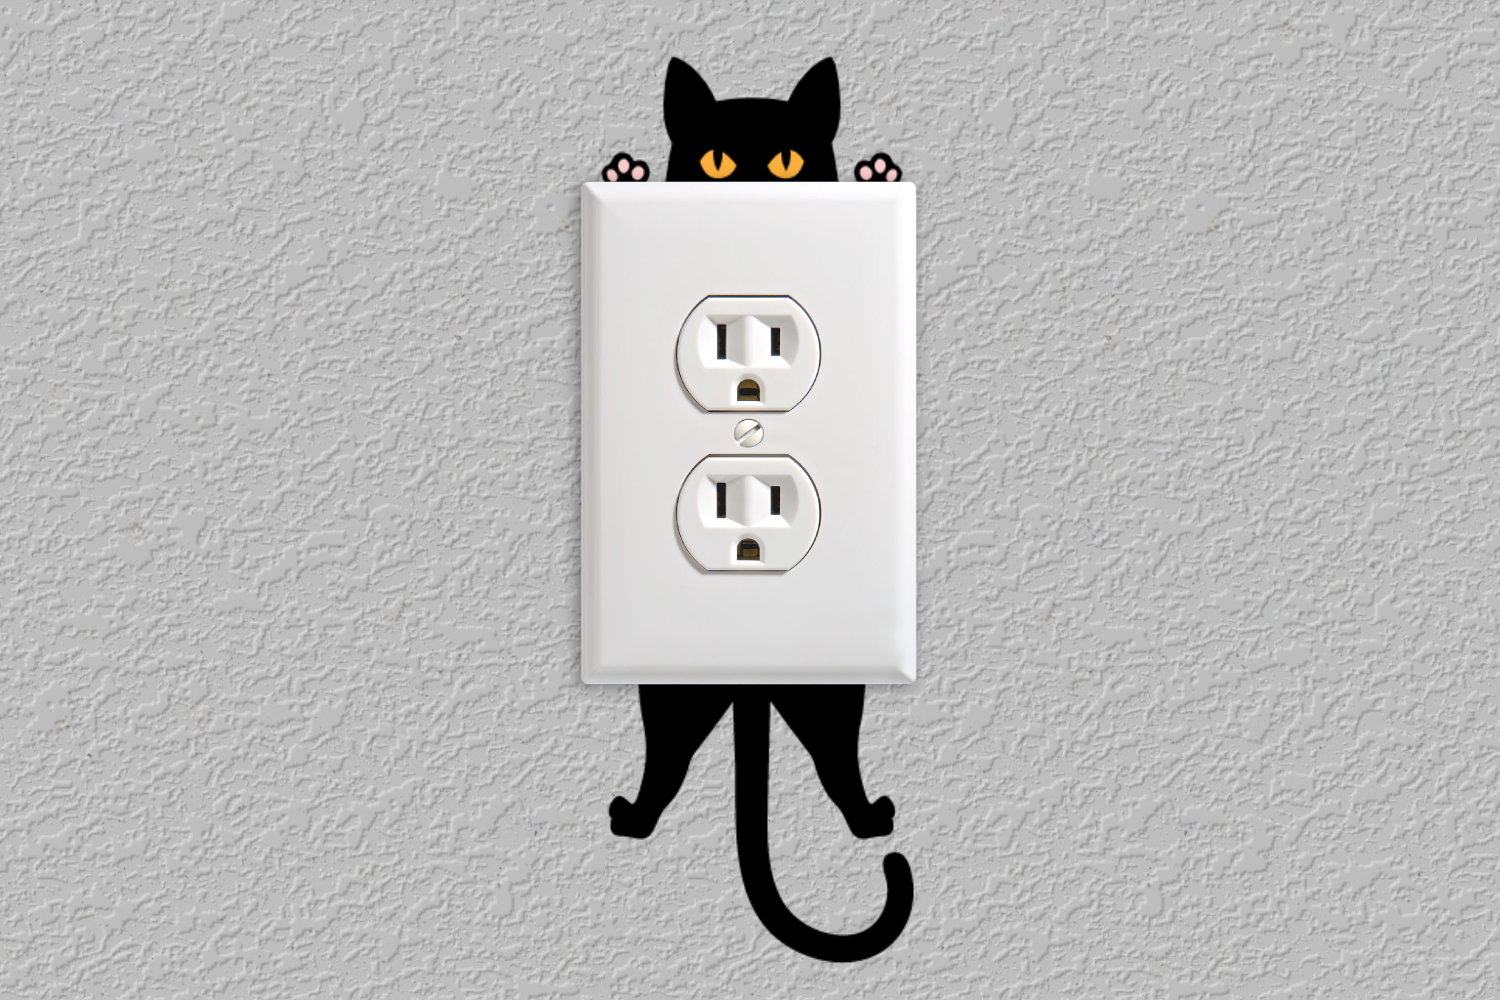 Download Free Hanging Cat Outlet Decoration Graphic By Risarocksit Creative for Cricut Explore, Silhouette and other cutting machines.